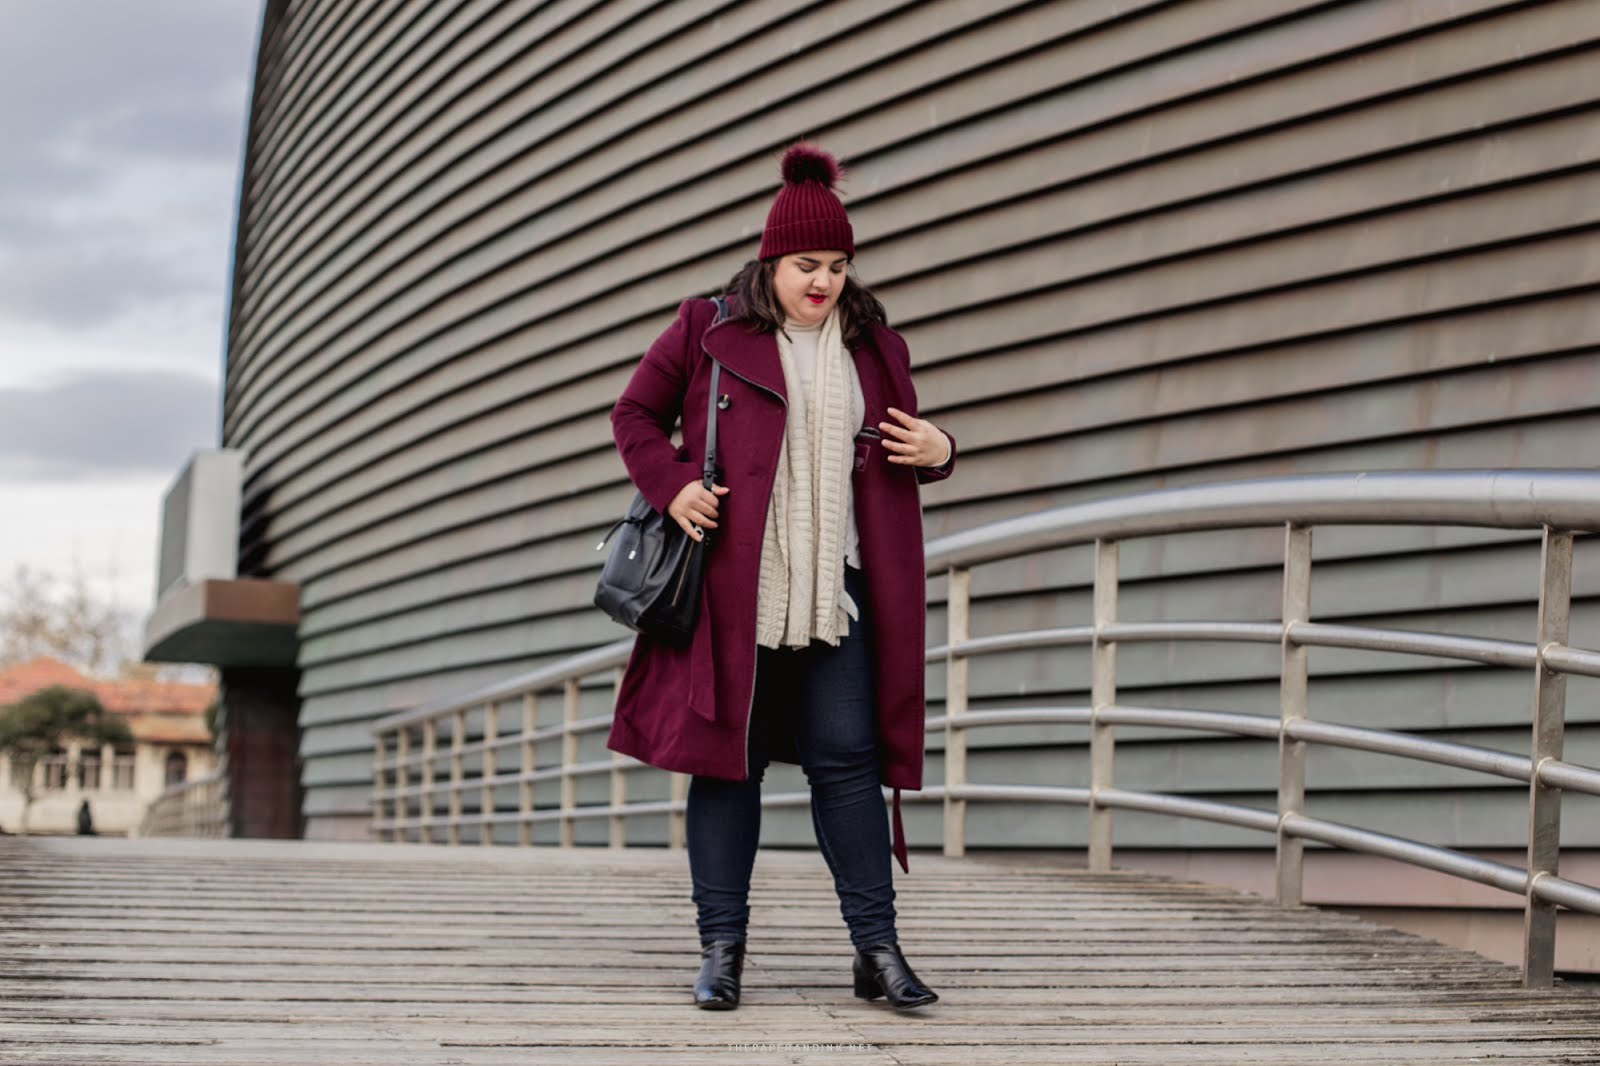 A burgundy OOTD with details, jeans and a lot of style.